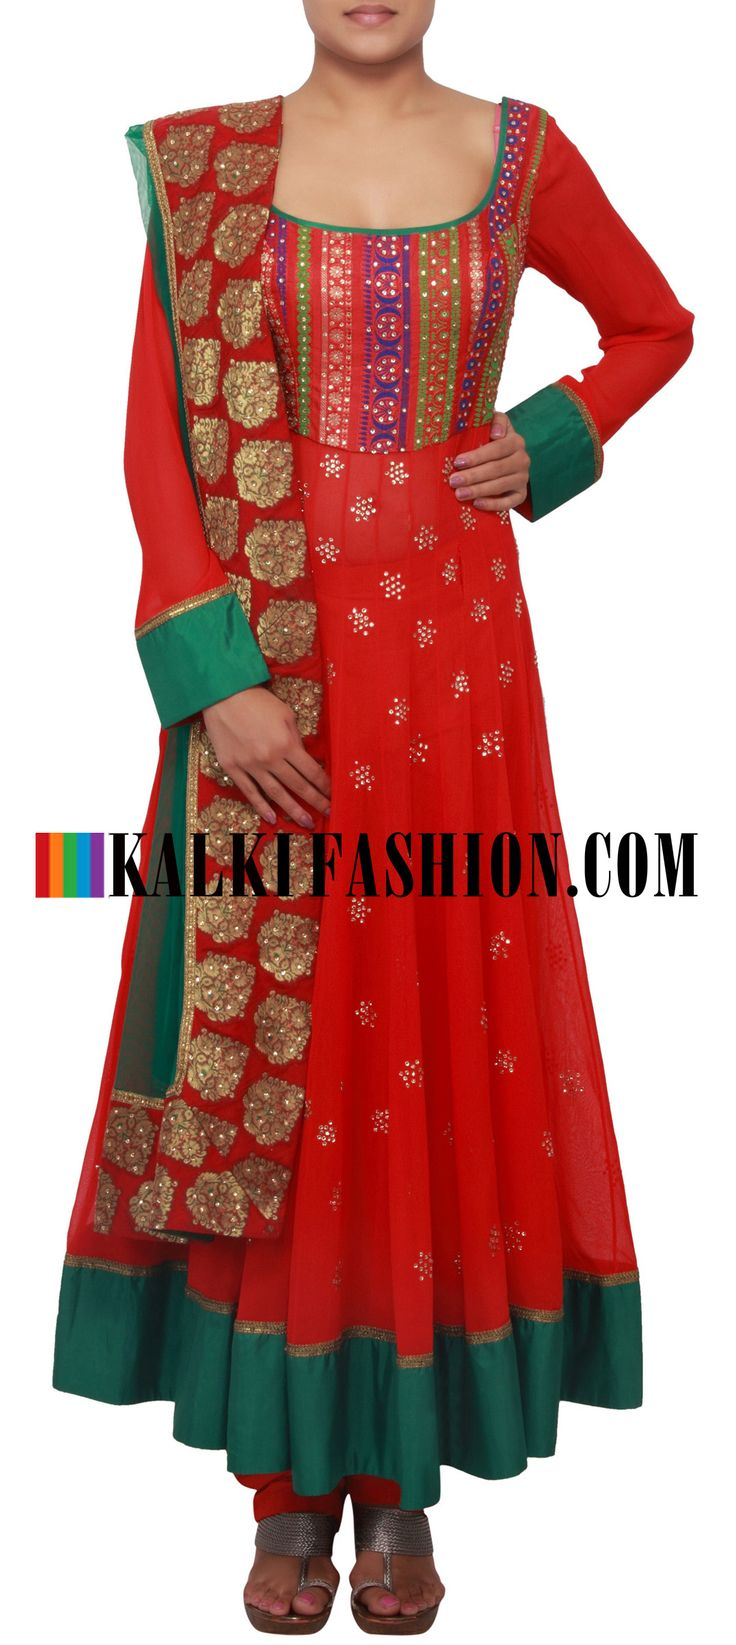 Get this beautiful salwar kameez here: http://www.kalkifashion.com/red-anarkali-suit-embellished-in-stone-embroidery-only-on-kalki.html Free shipping worldwide.